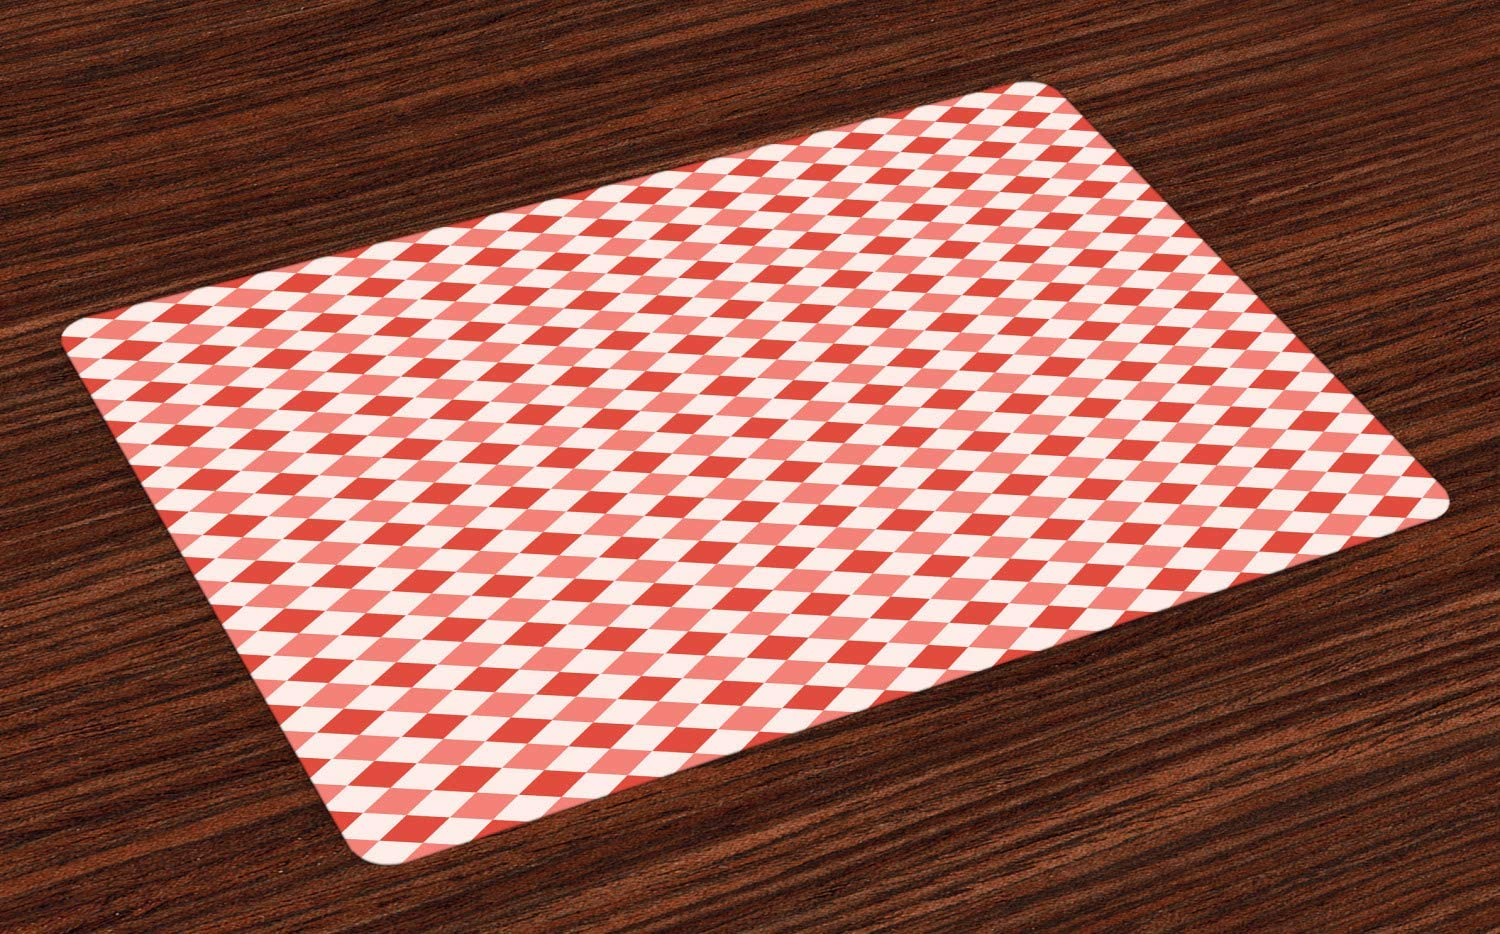 Lunarable Checkered Place Mats Set of 4, Chessboard Pattern with Diamond Shapes Scottish Traditional Grid, Washable Fabric Placemats for Dining Room Kitchen Table Decor, Coral Vermilion Baby Pink